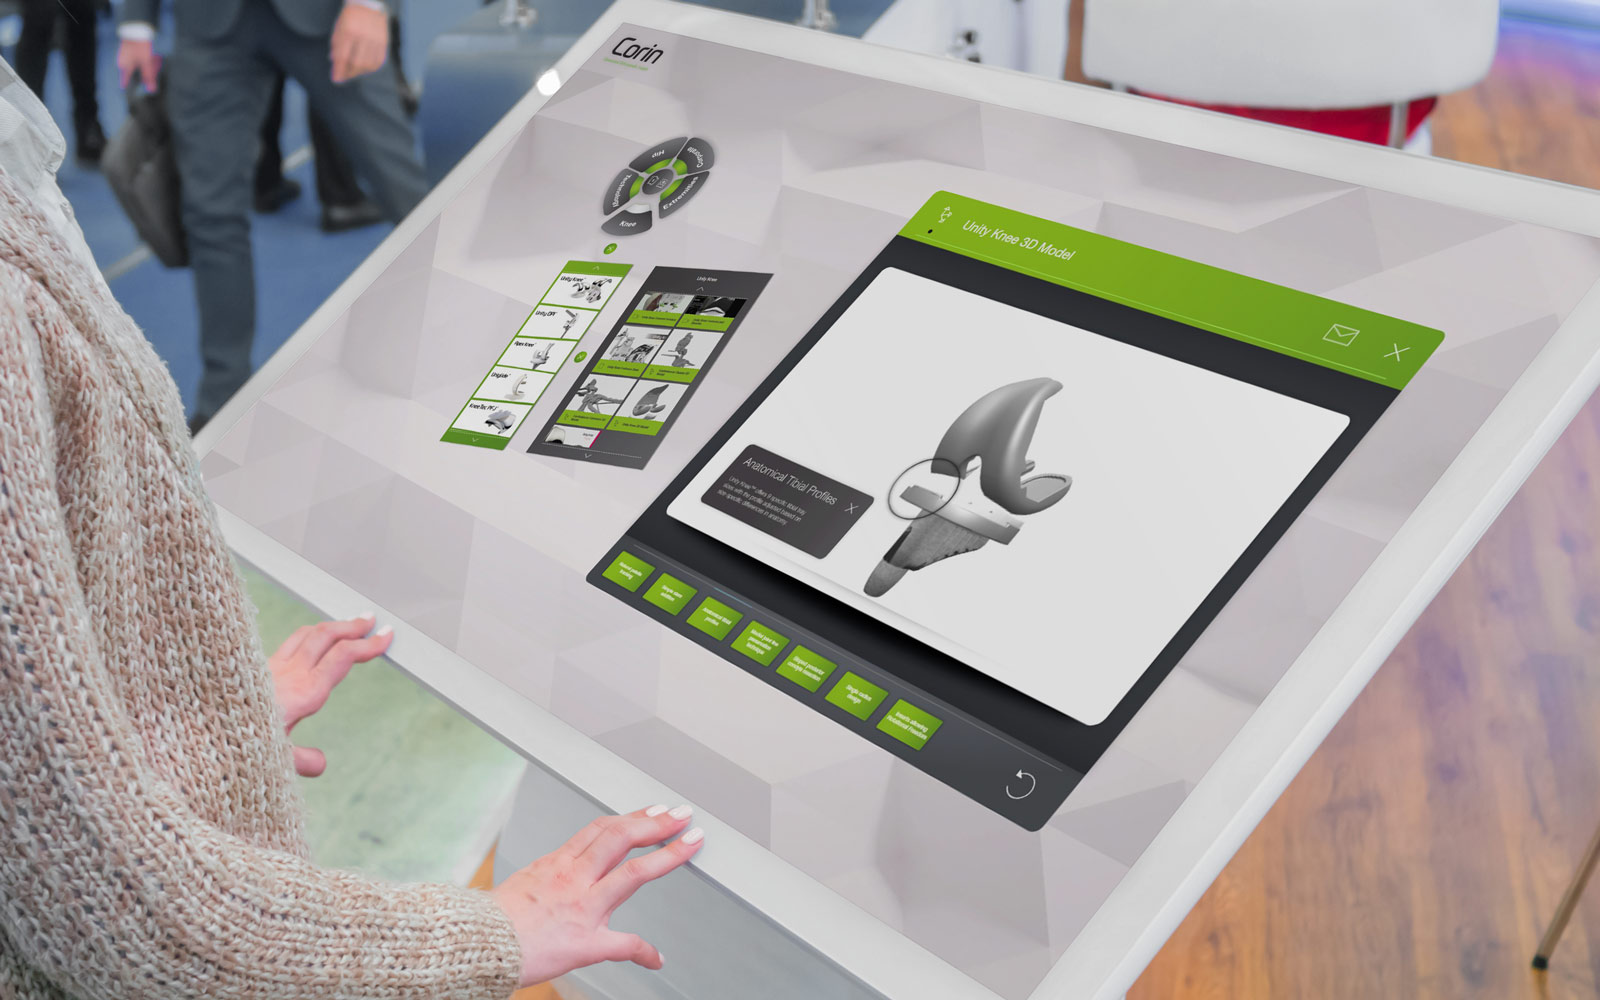 person interacting with Corin interactive touchscreen software displayed on large white tablet